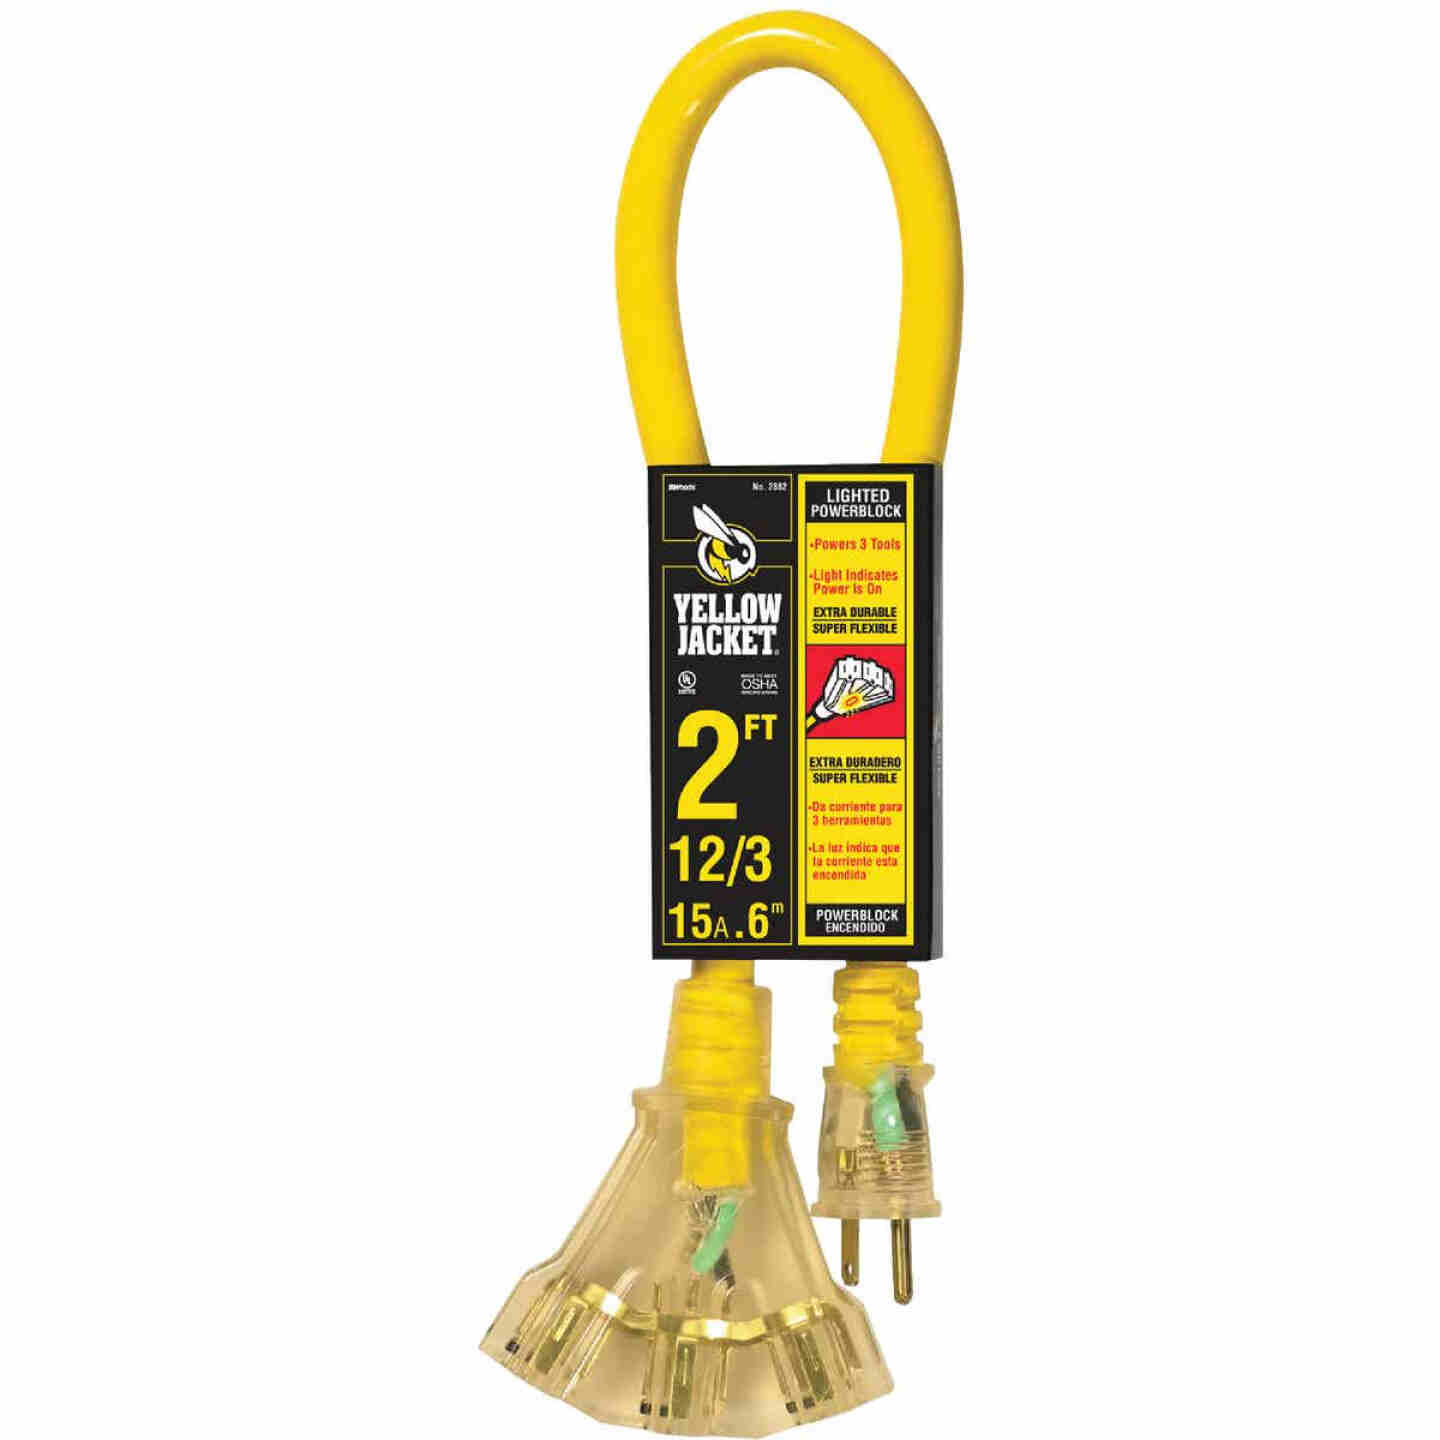 Yellow Jacket 2 Ft. 12/3 Contractor Grade Power Block Extension Cord Image 1